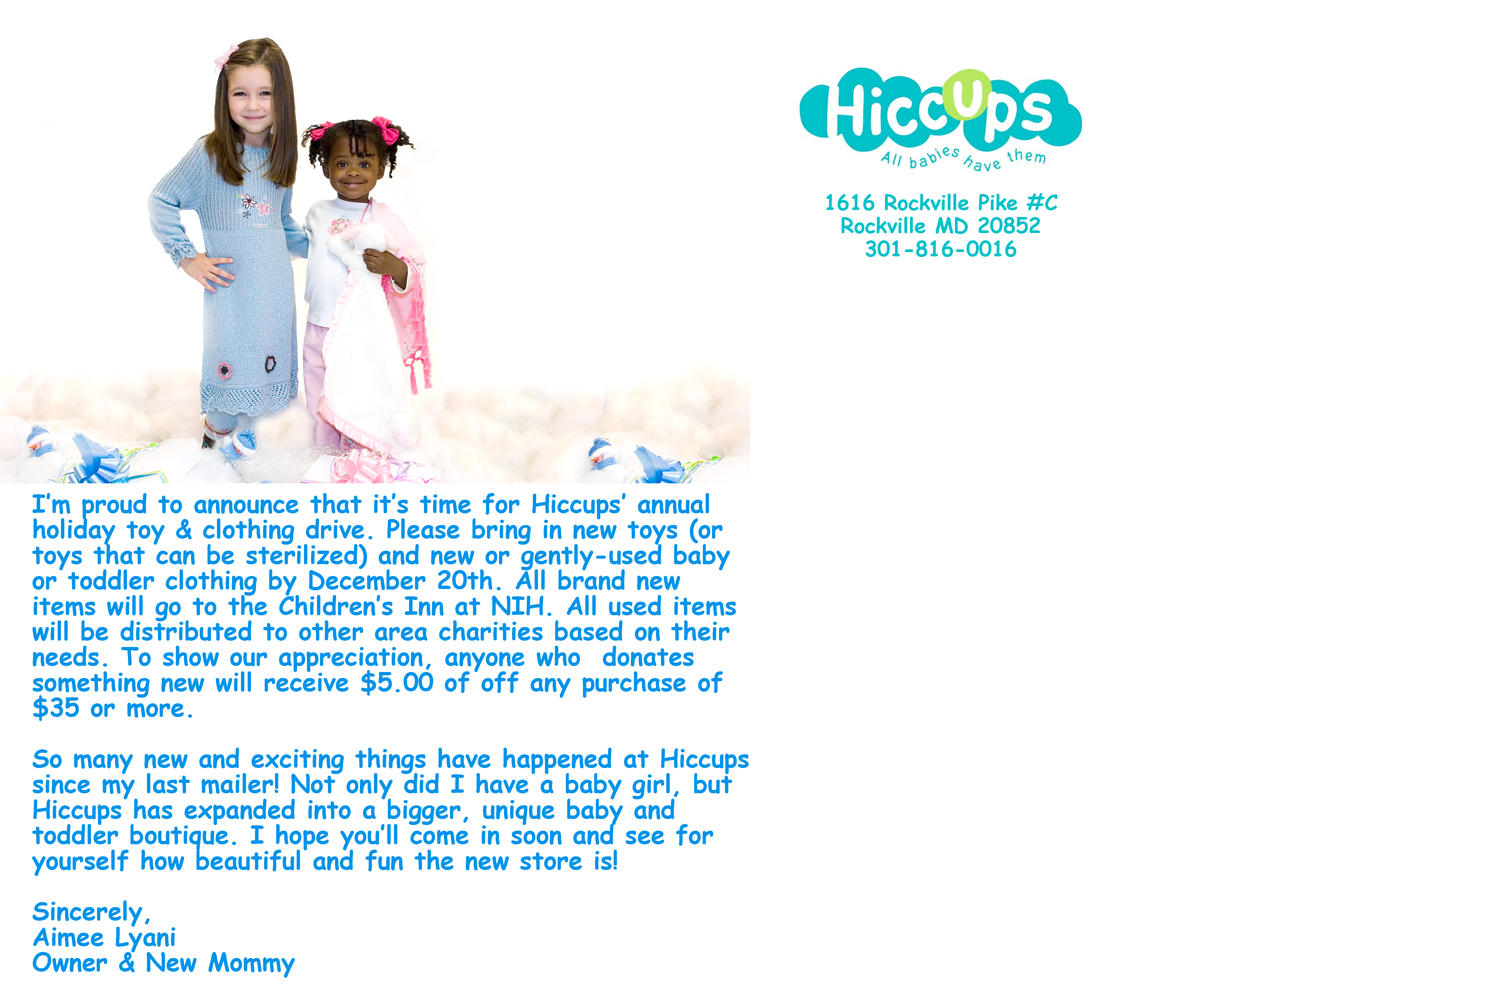 Hiccups Baby Boutique Marketing Postcard